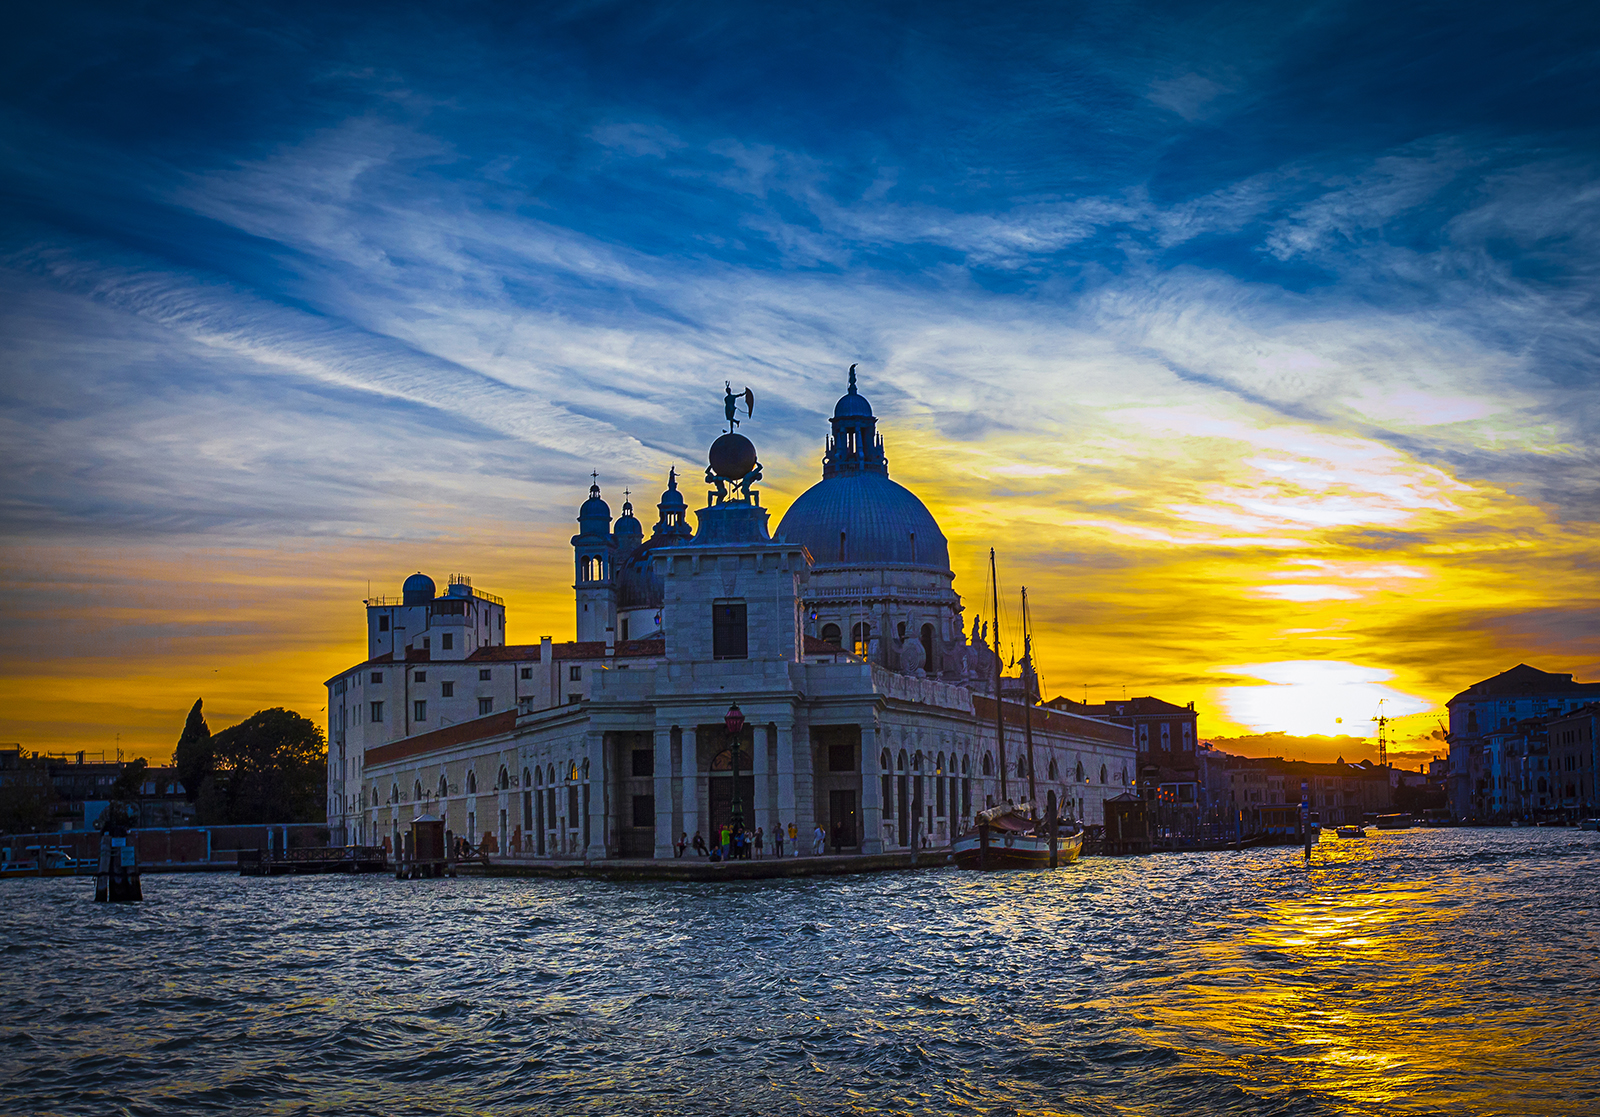 Composition-Venice Domo sunset.jpg